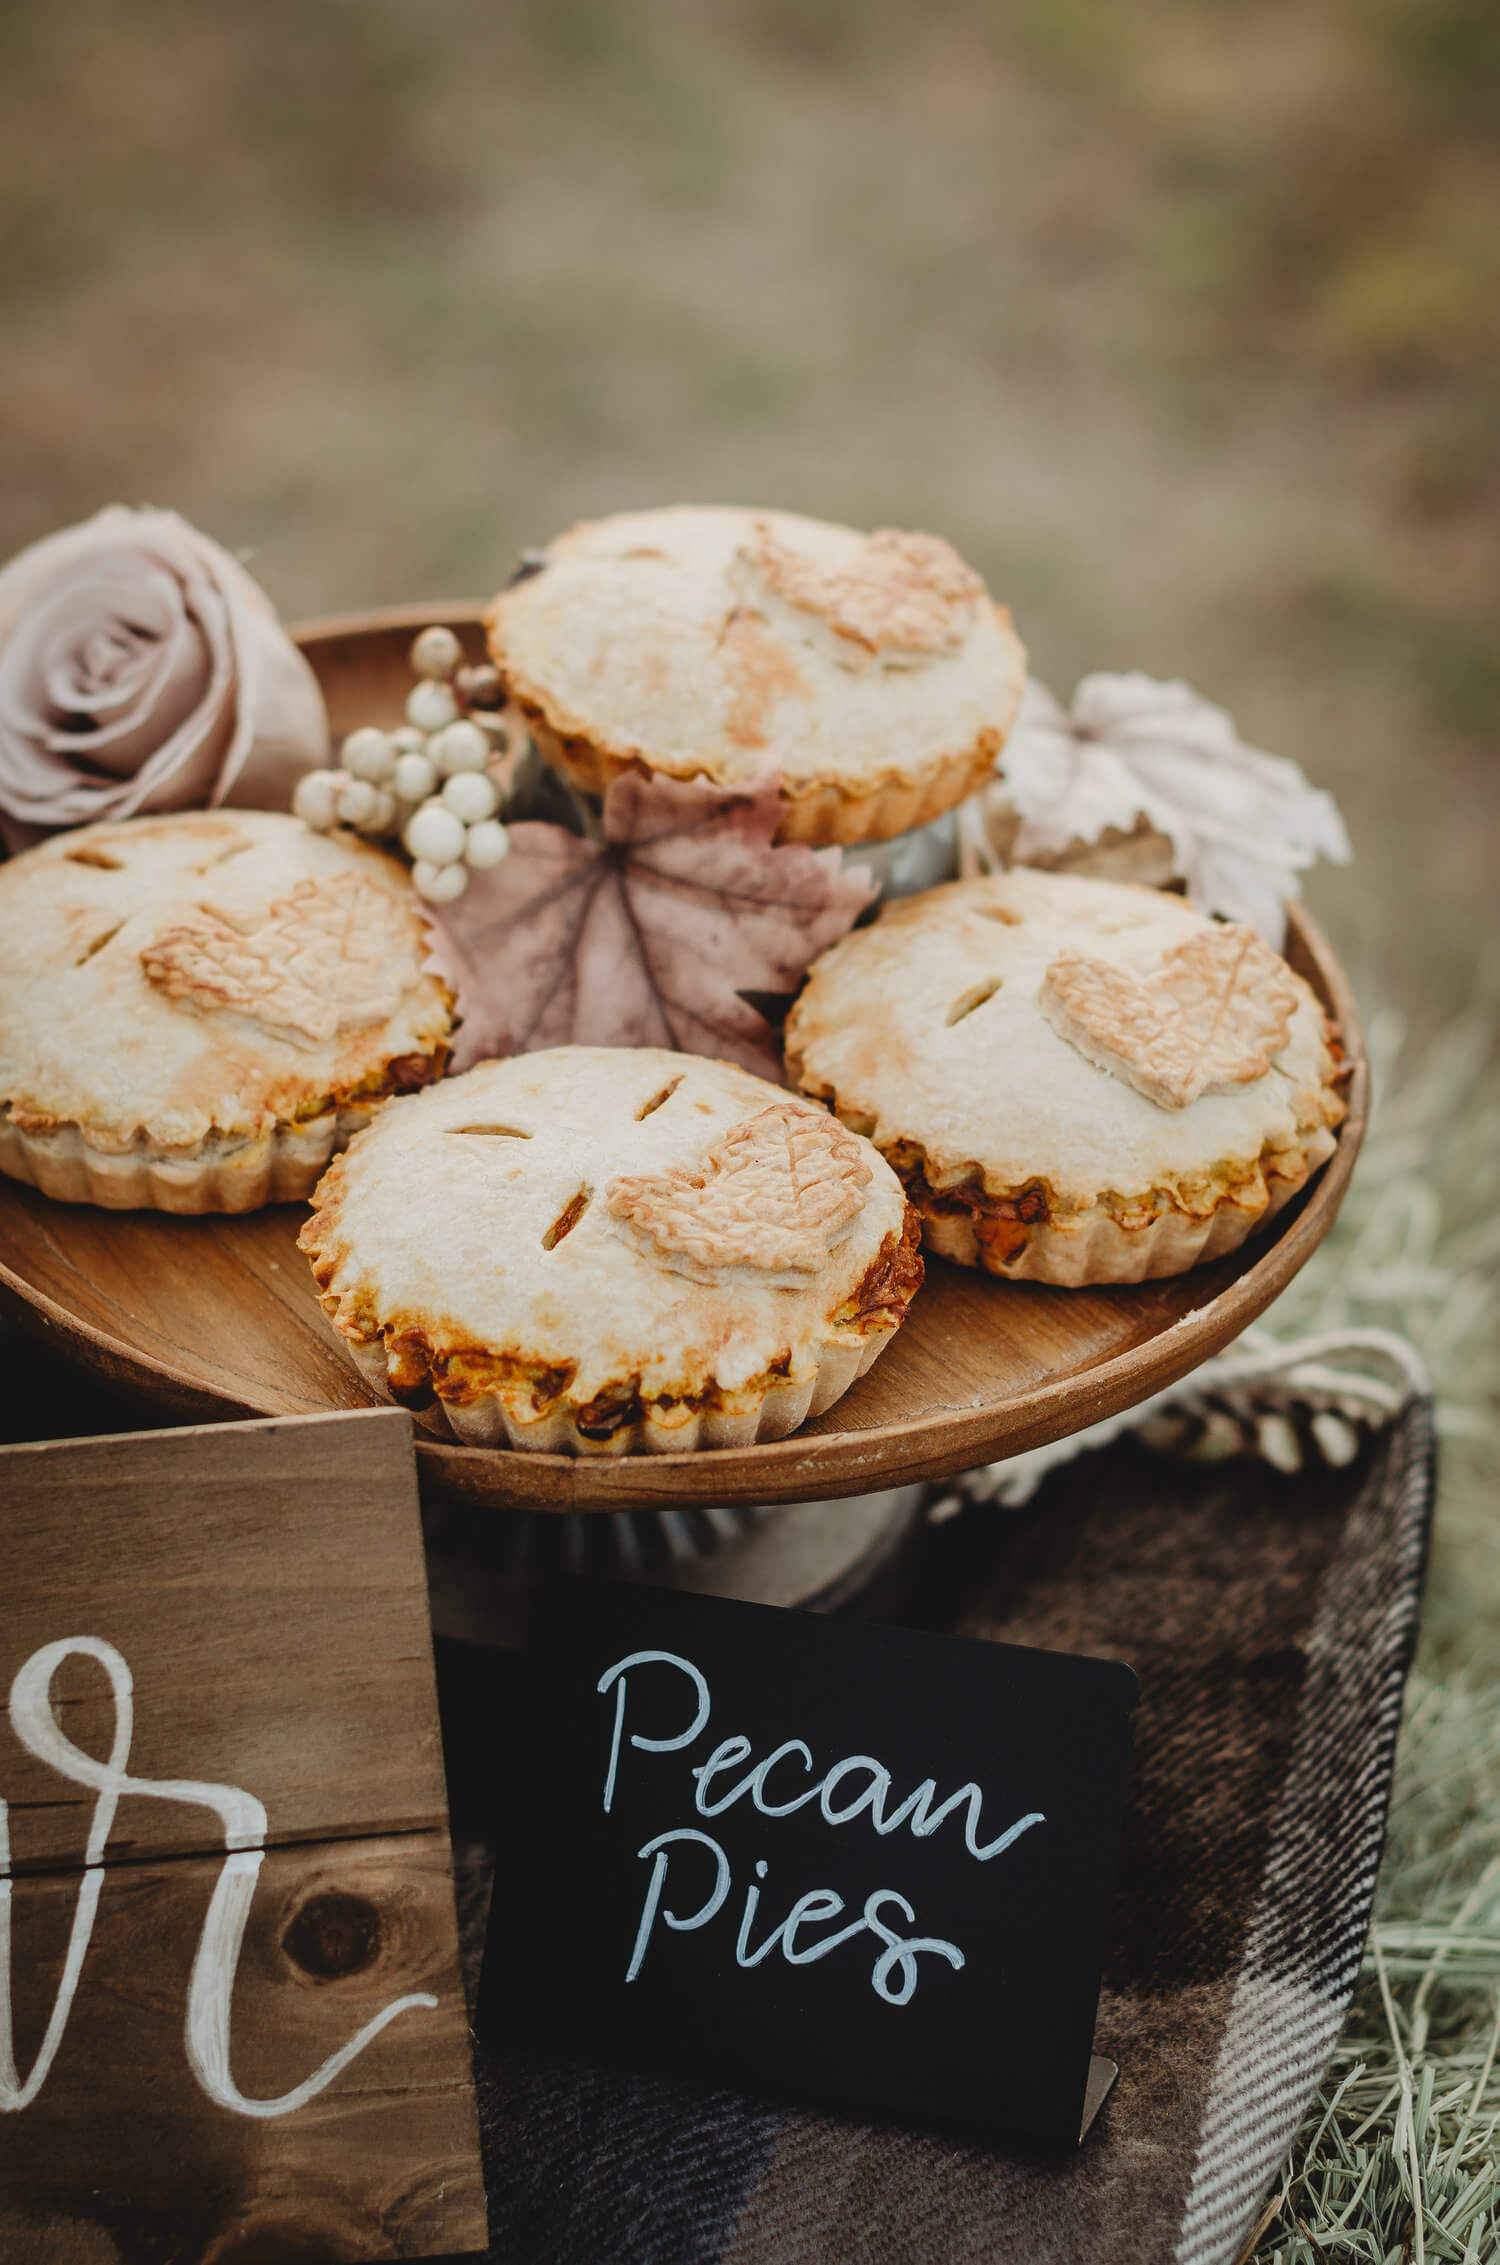 Yummy mini pecan pies are the perfect dessert for this fall themed bridal shower on a farm. Click to see many more bridal shower ideas from this Fall in Love party theme. Created by party stylist Mint Event Design. #bridalshowers #bridalshowerideas #rusticwedding #rusticbridalshower #bridalshowerdecor #farmwedding #partyideas #fallbridalshower #pecanpies #bridaslshowerdessert #minidesserts